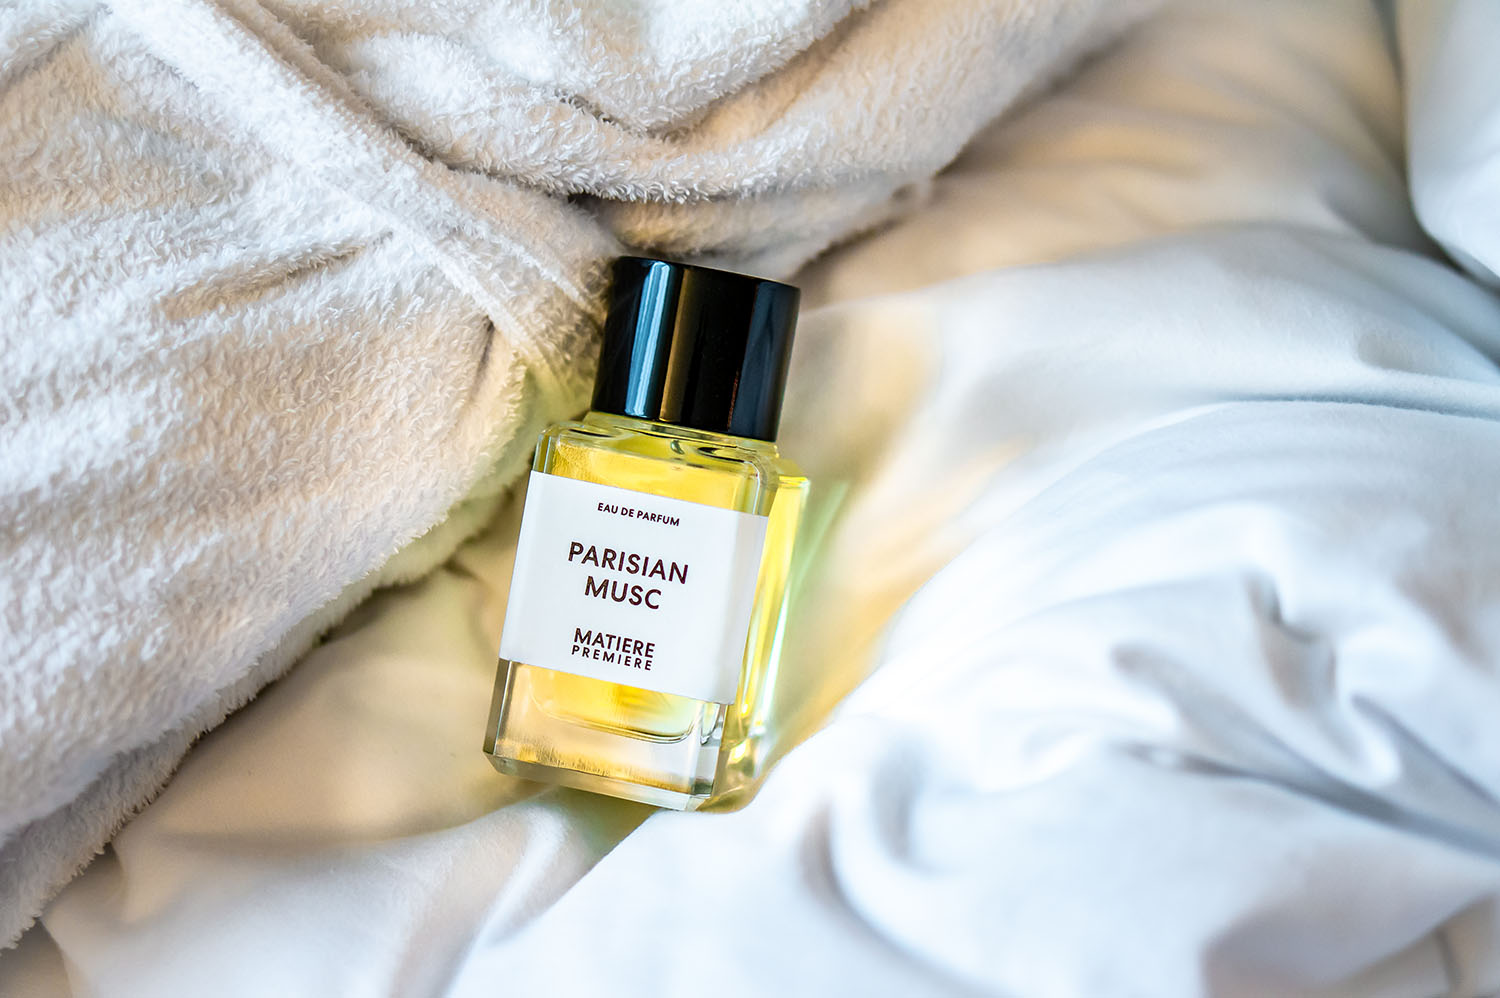 Smelling the good life: Parisian Musc from Matiere Premiere